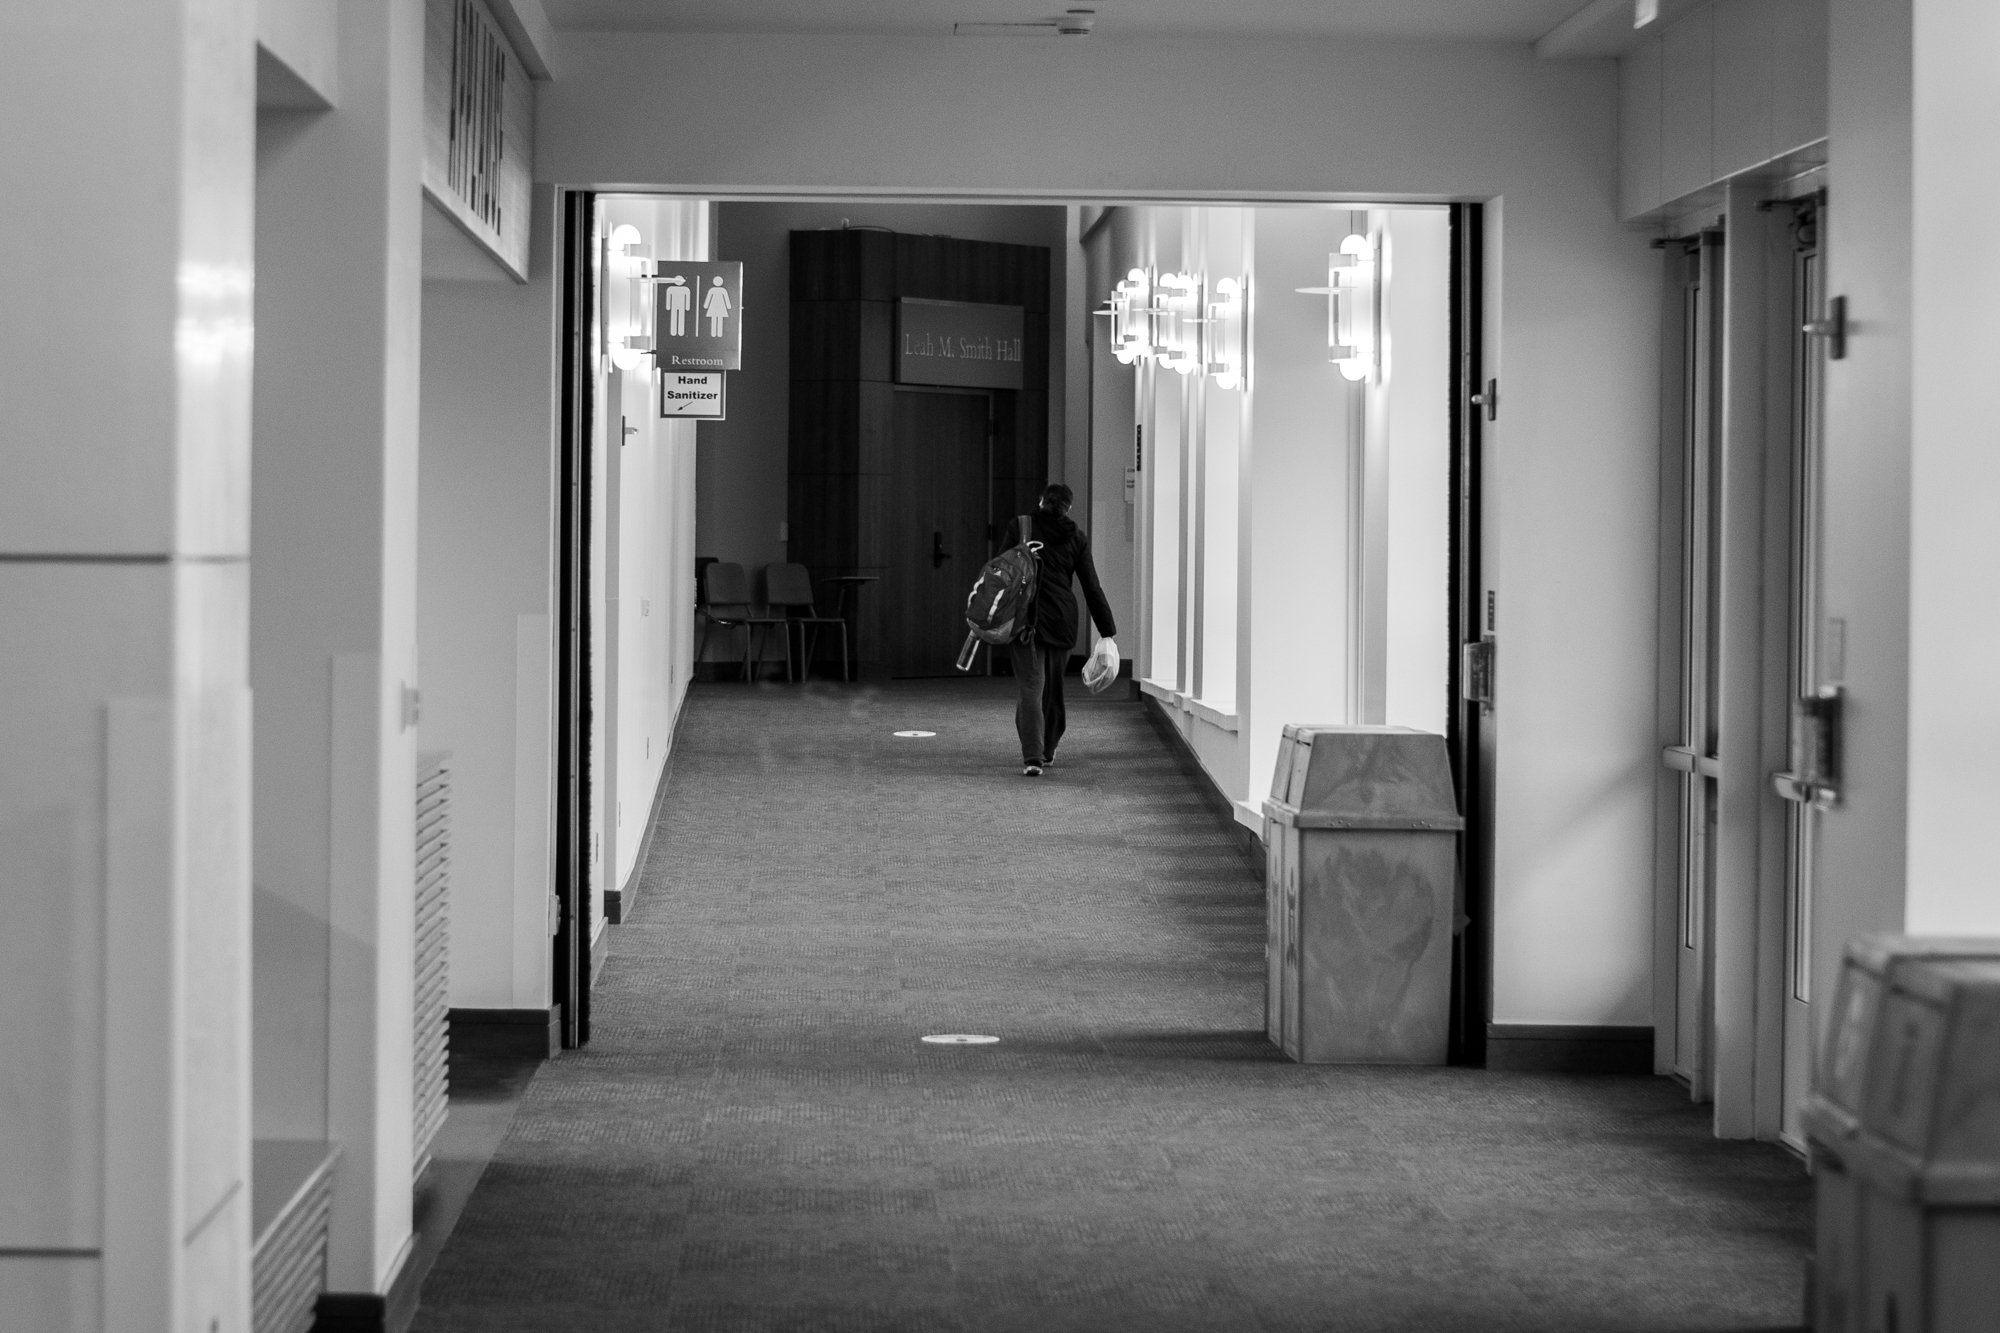 A person walks through an otherwise empty hallway